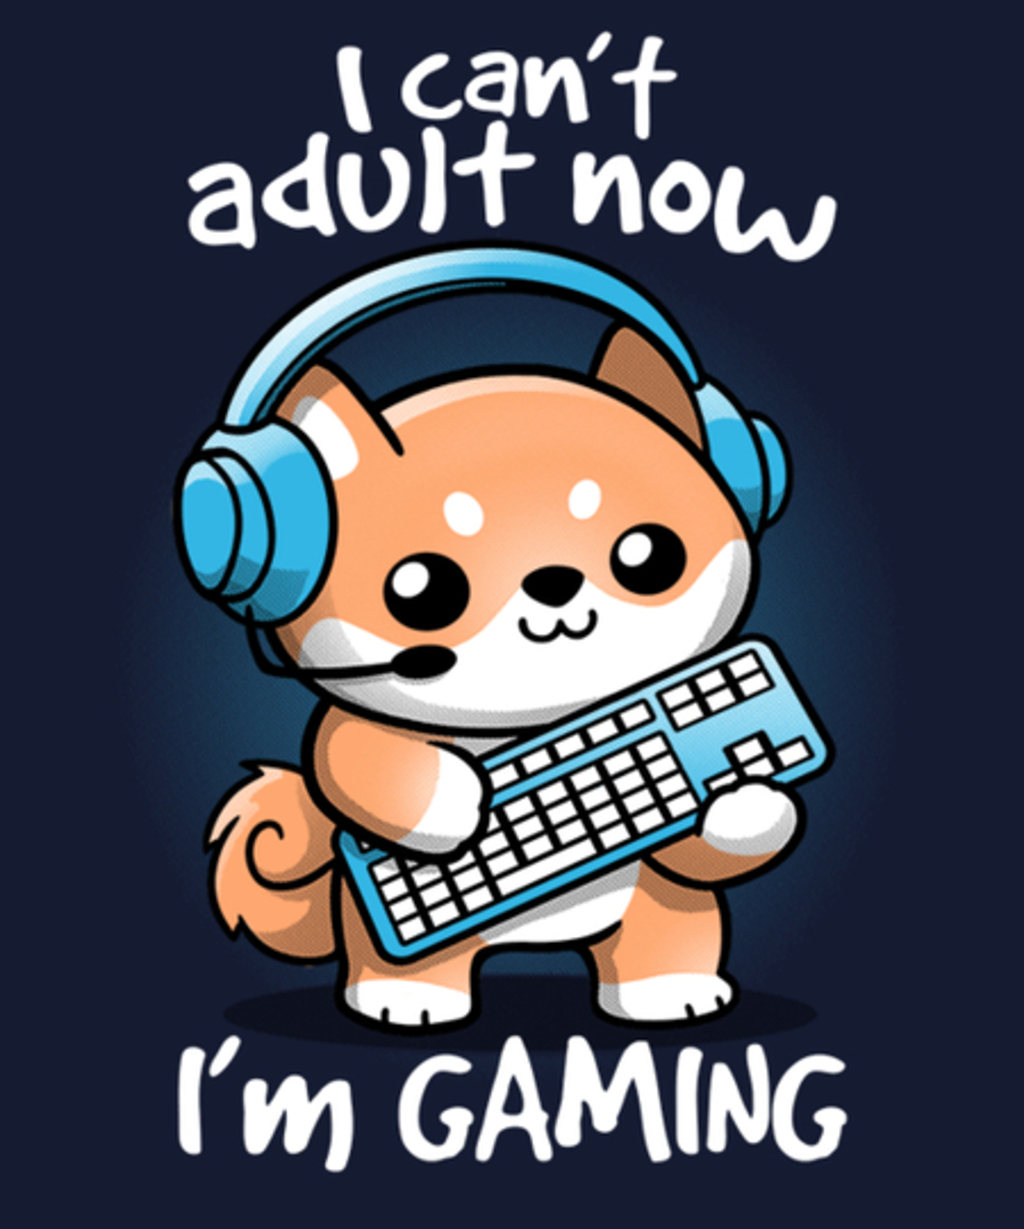 Qwertee: Gamer can't adult